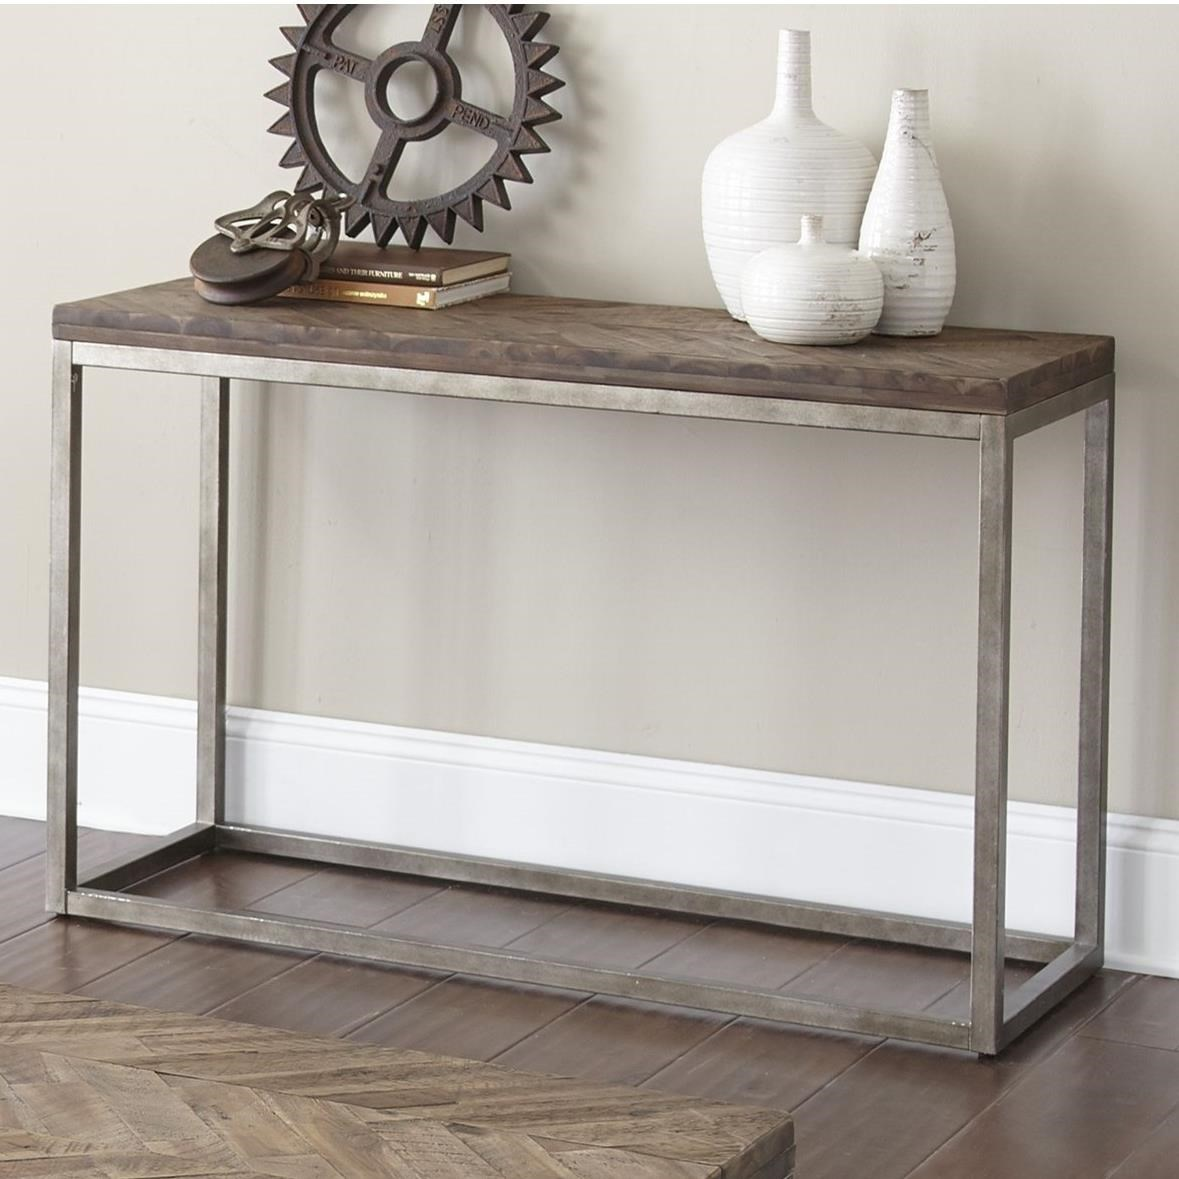 Lorenza Sofa Table by Steve Silver at Walker's Furniture